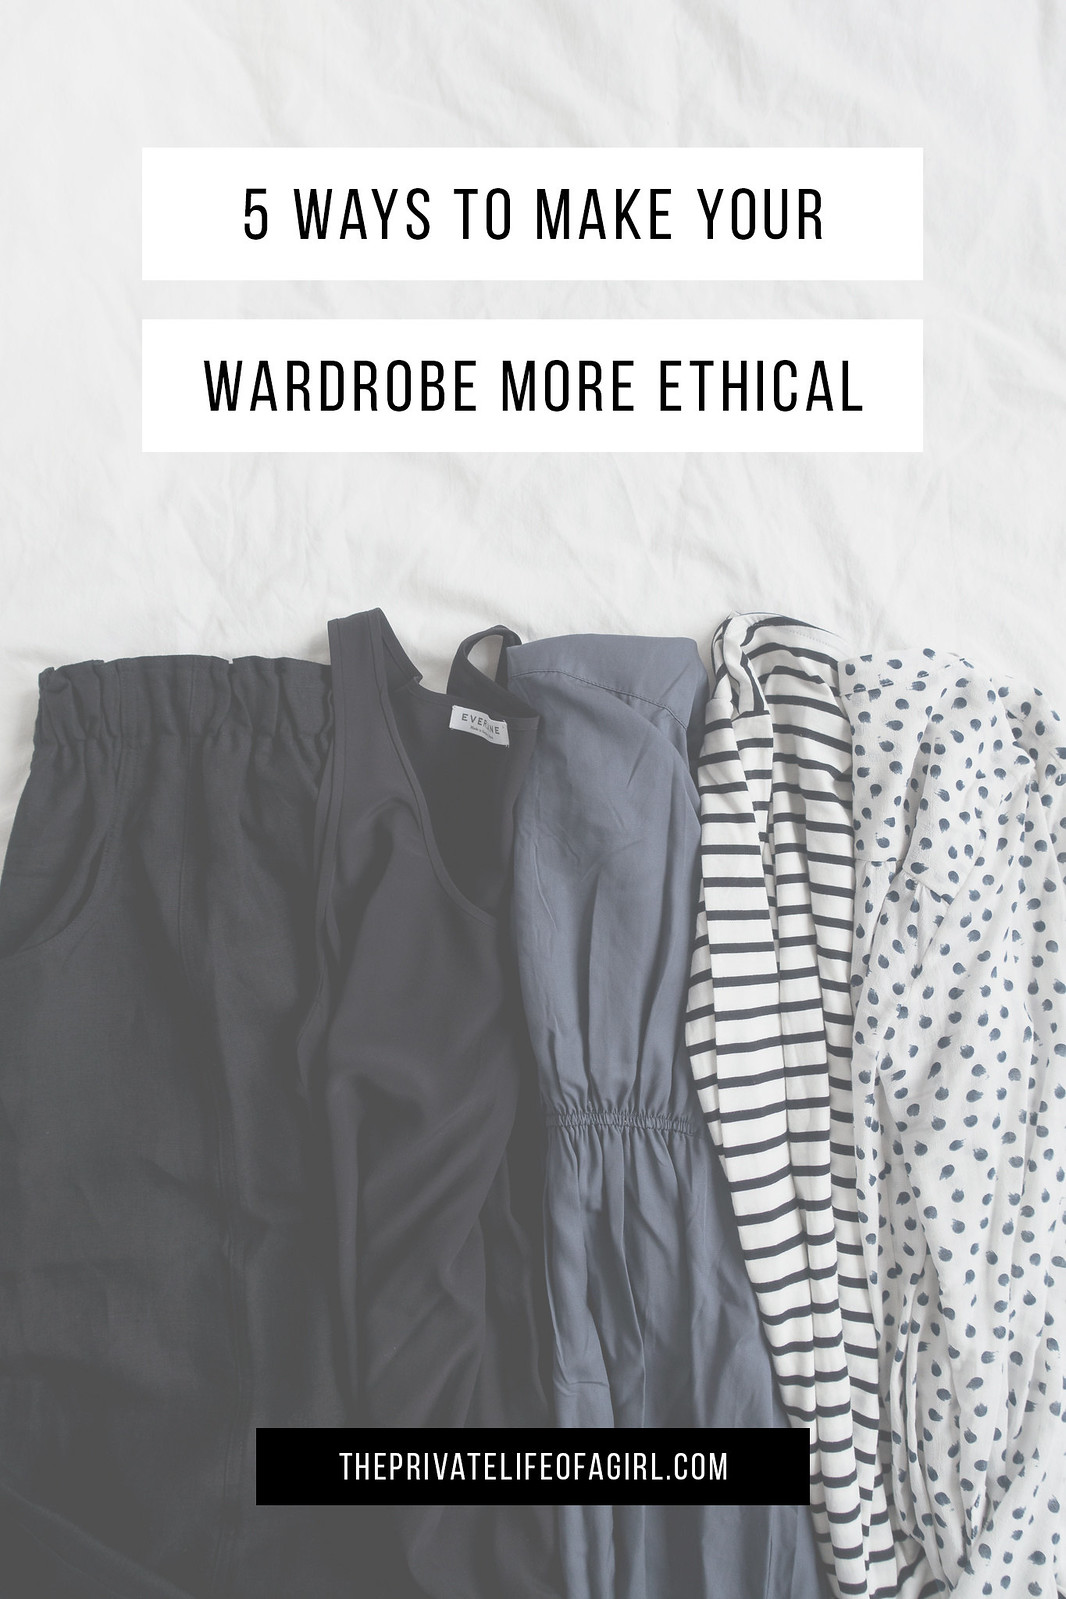 5 Ways To Make Your Wardrobe More Conscious